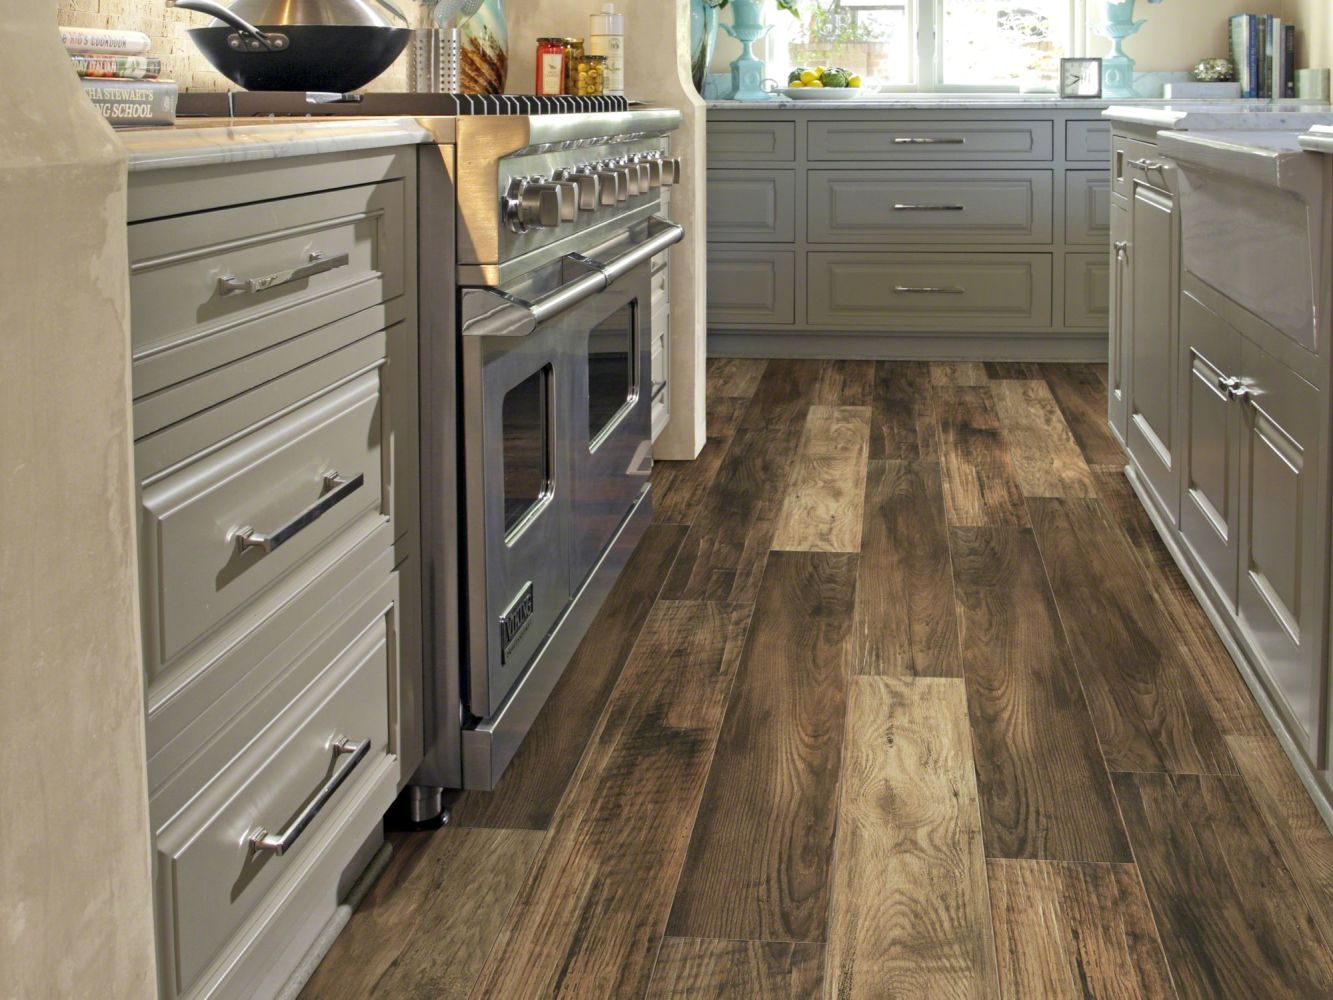 Shaw Floors Home Fn Gold Laminate Sanibel Sunlight Beige 02007_HL379